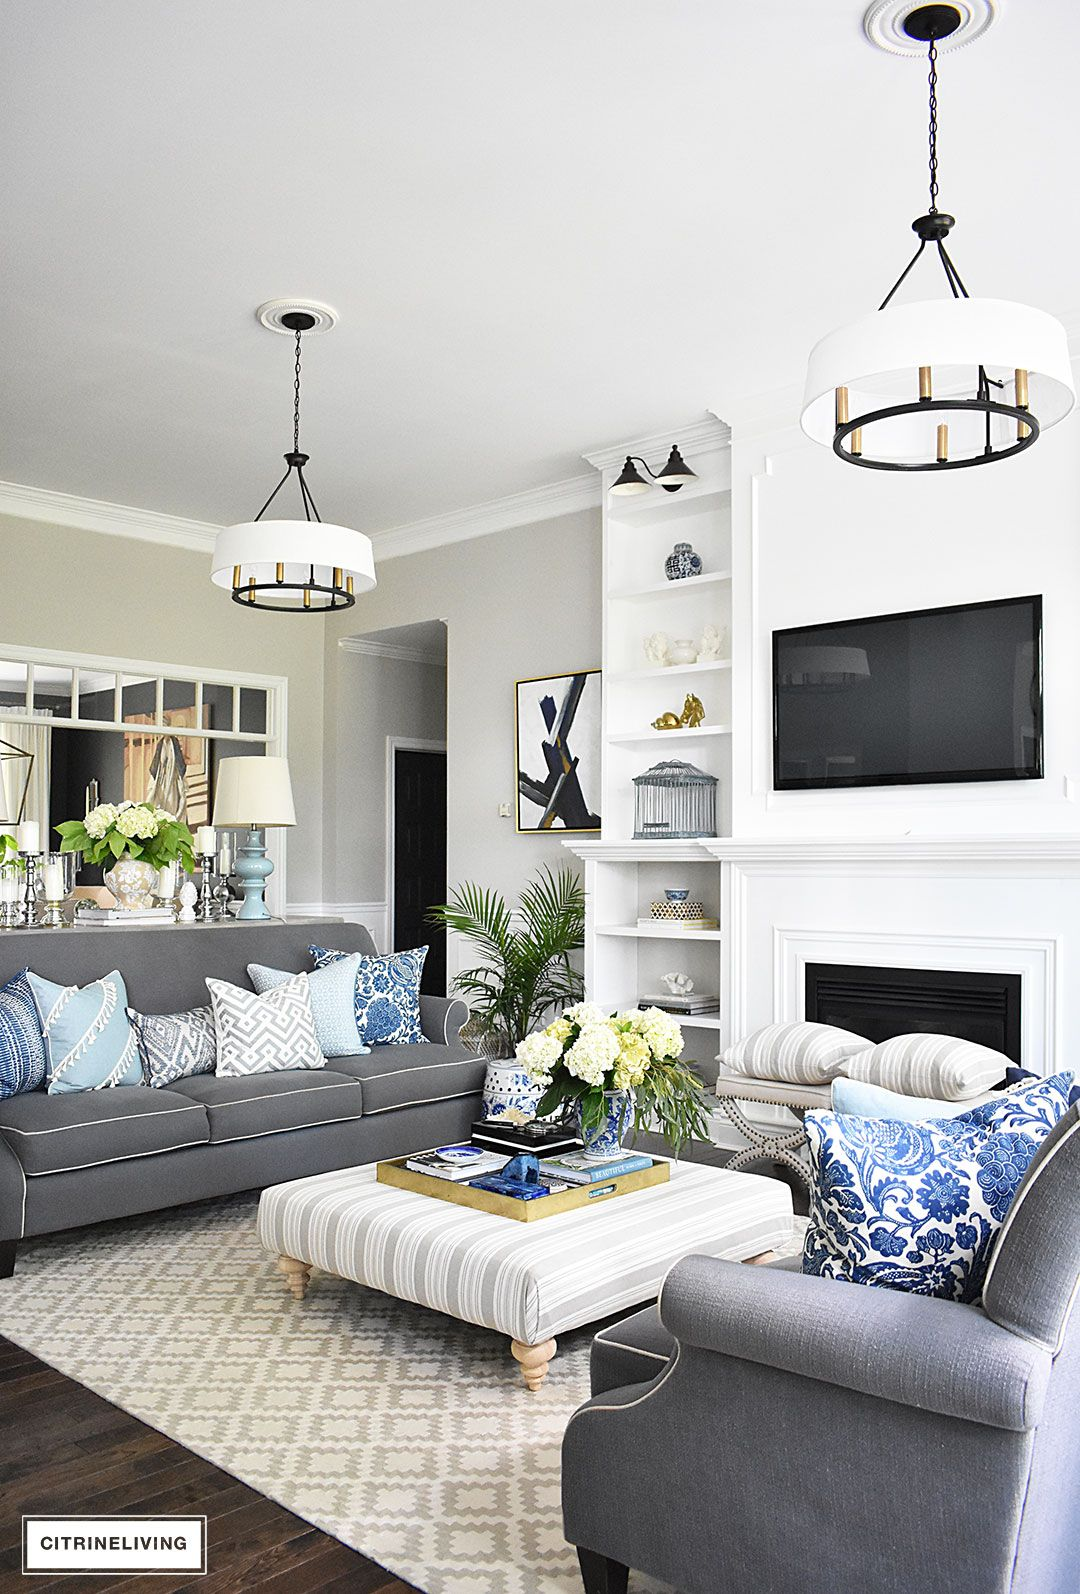 20+ Fresh Ideas for Decorating with Blue and White | Pinterest ...